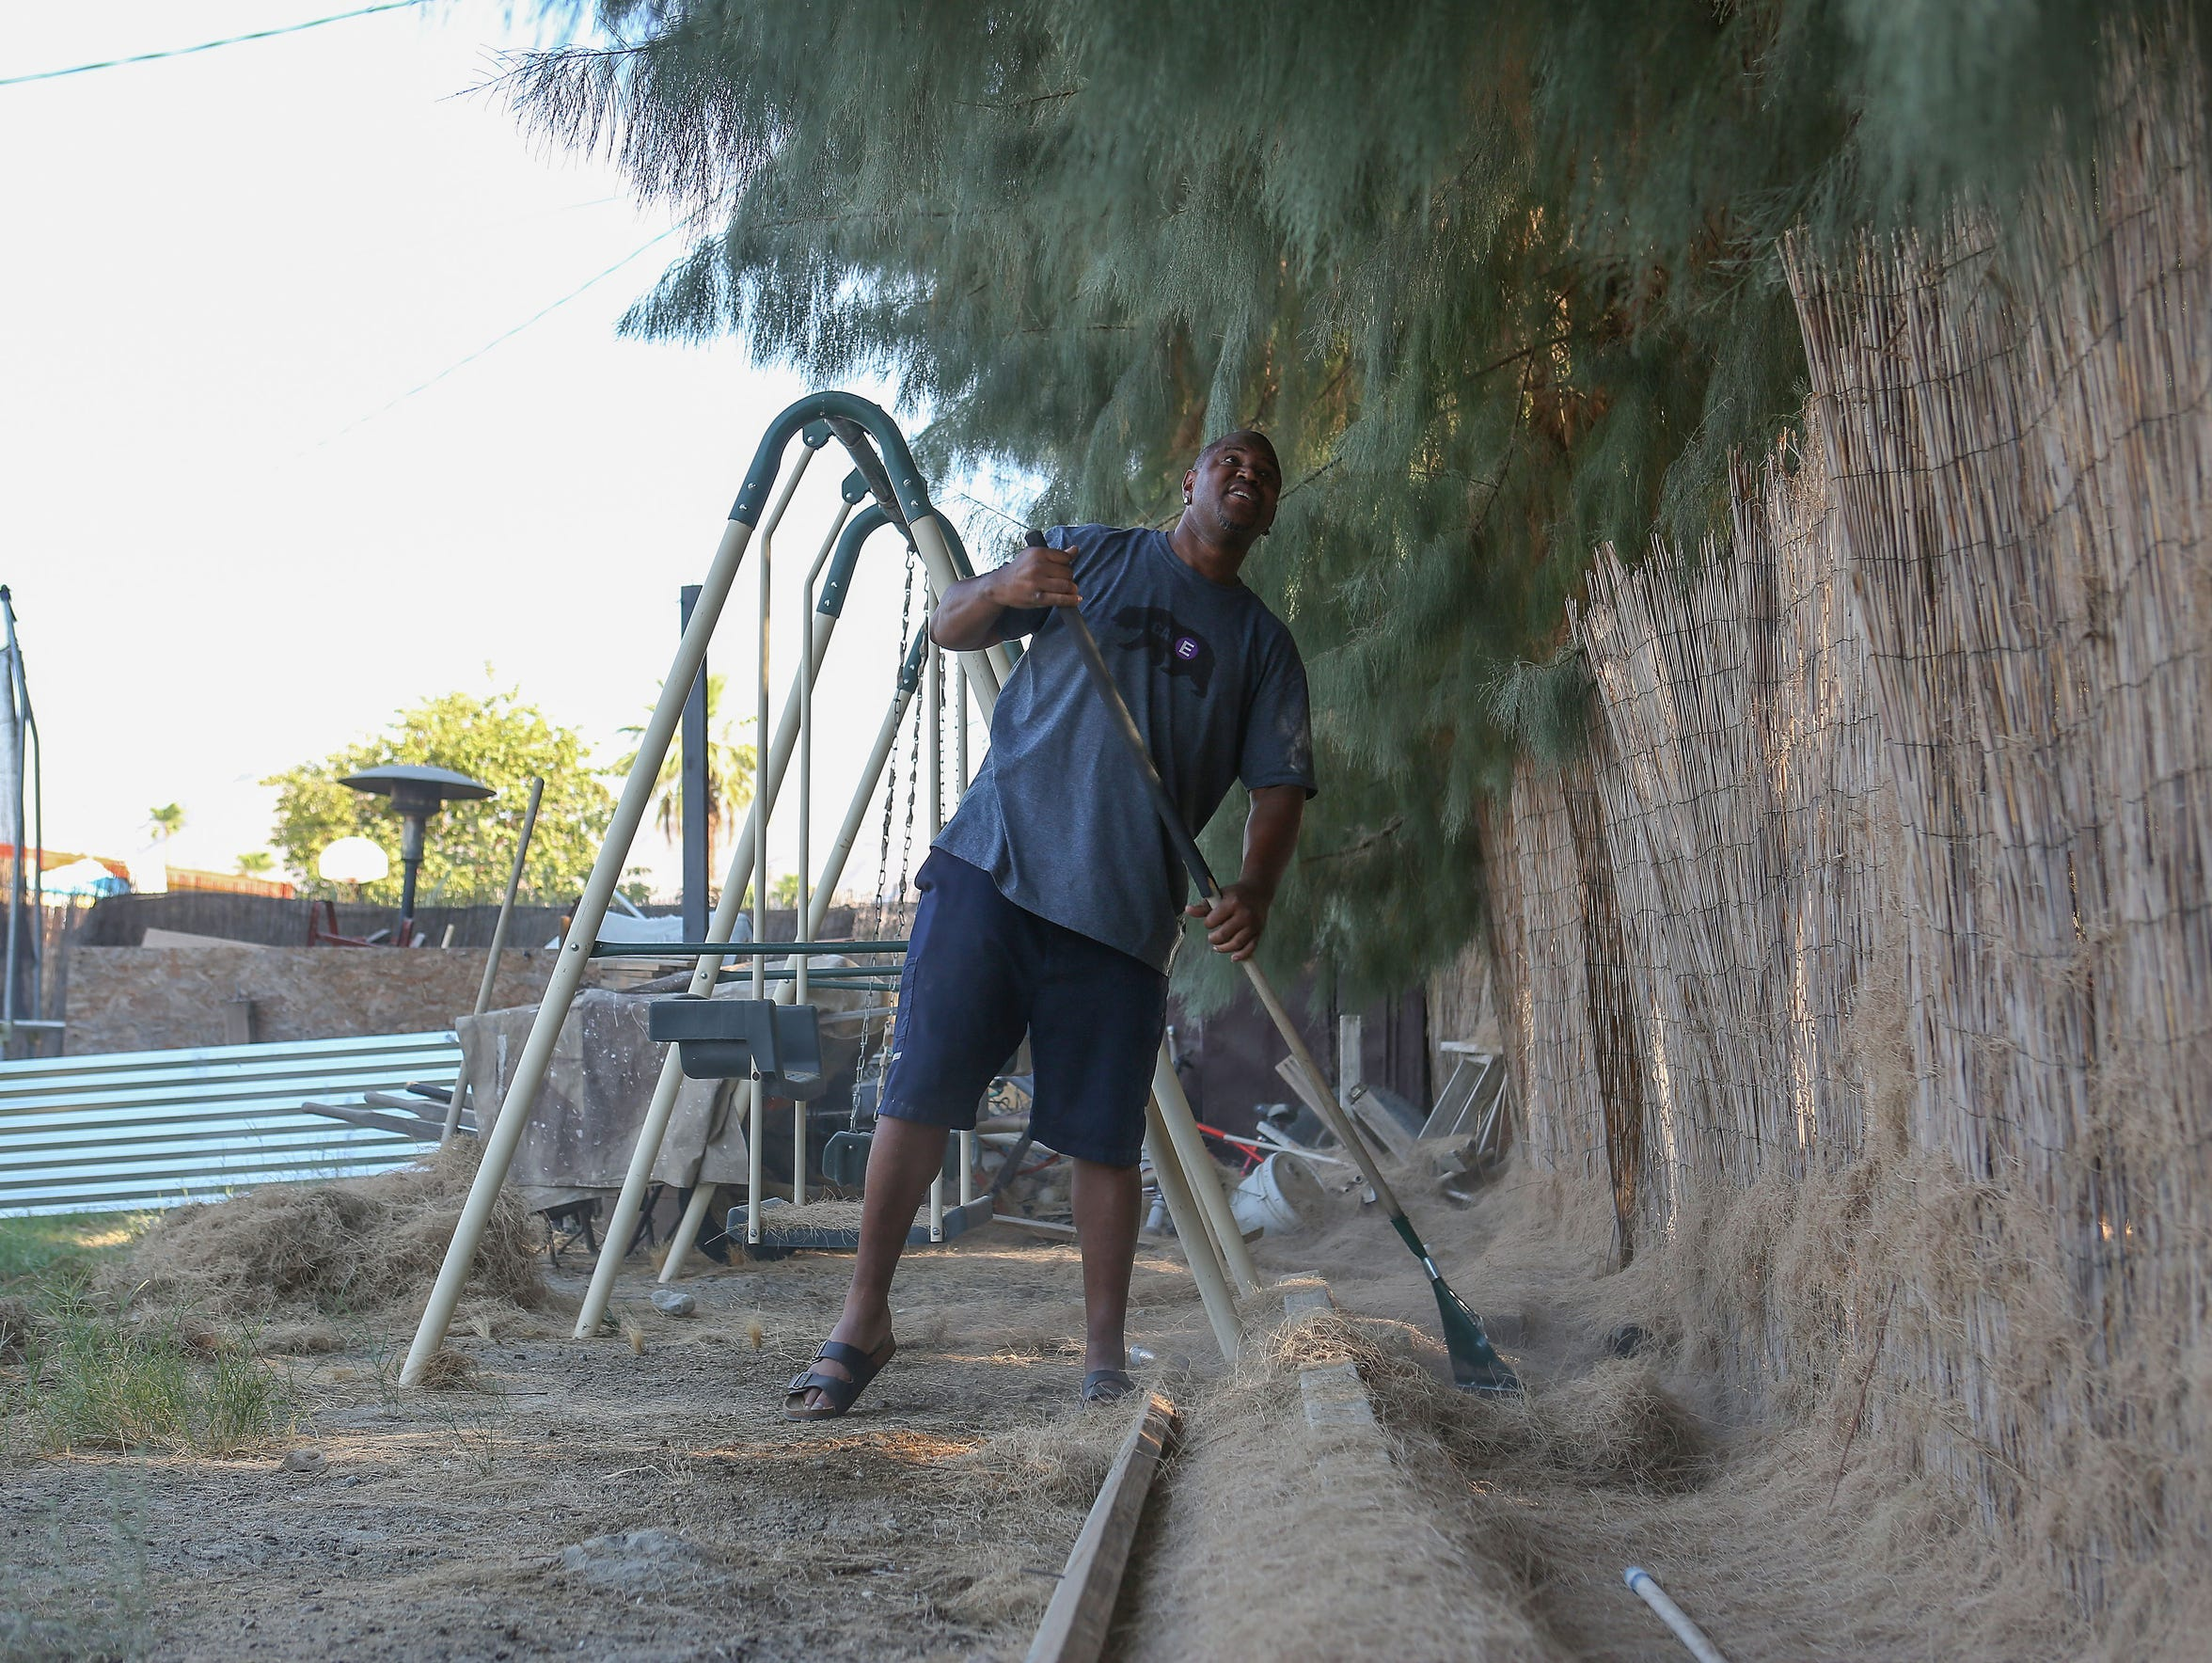 Christopher Williams rakes the needles of the tamarisk